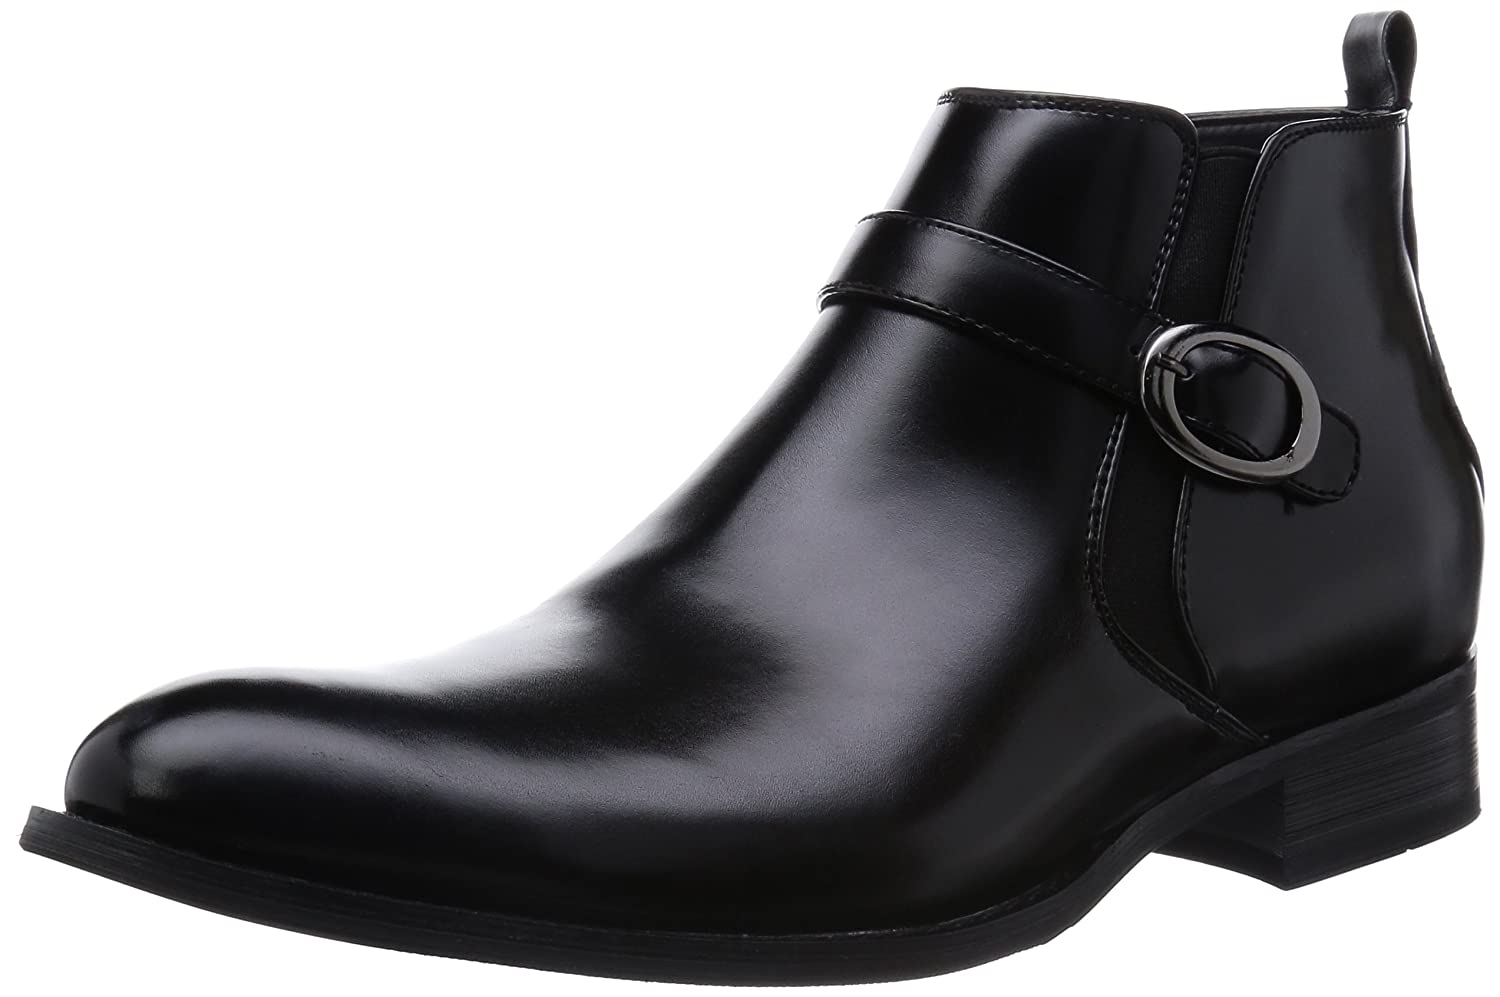 MM/ONE Men's Elevator Shoes Plain-toe Side Zipper Buckle Ankle Boots Black Dark Brown